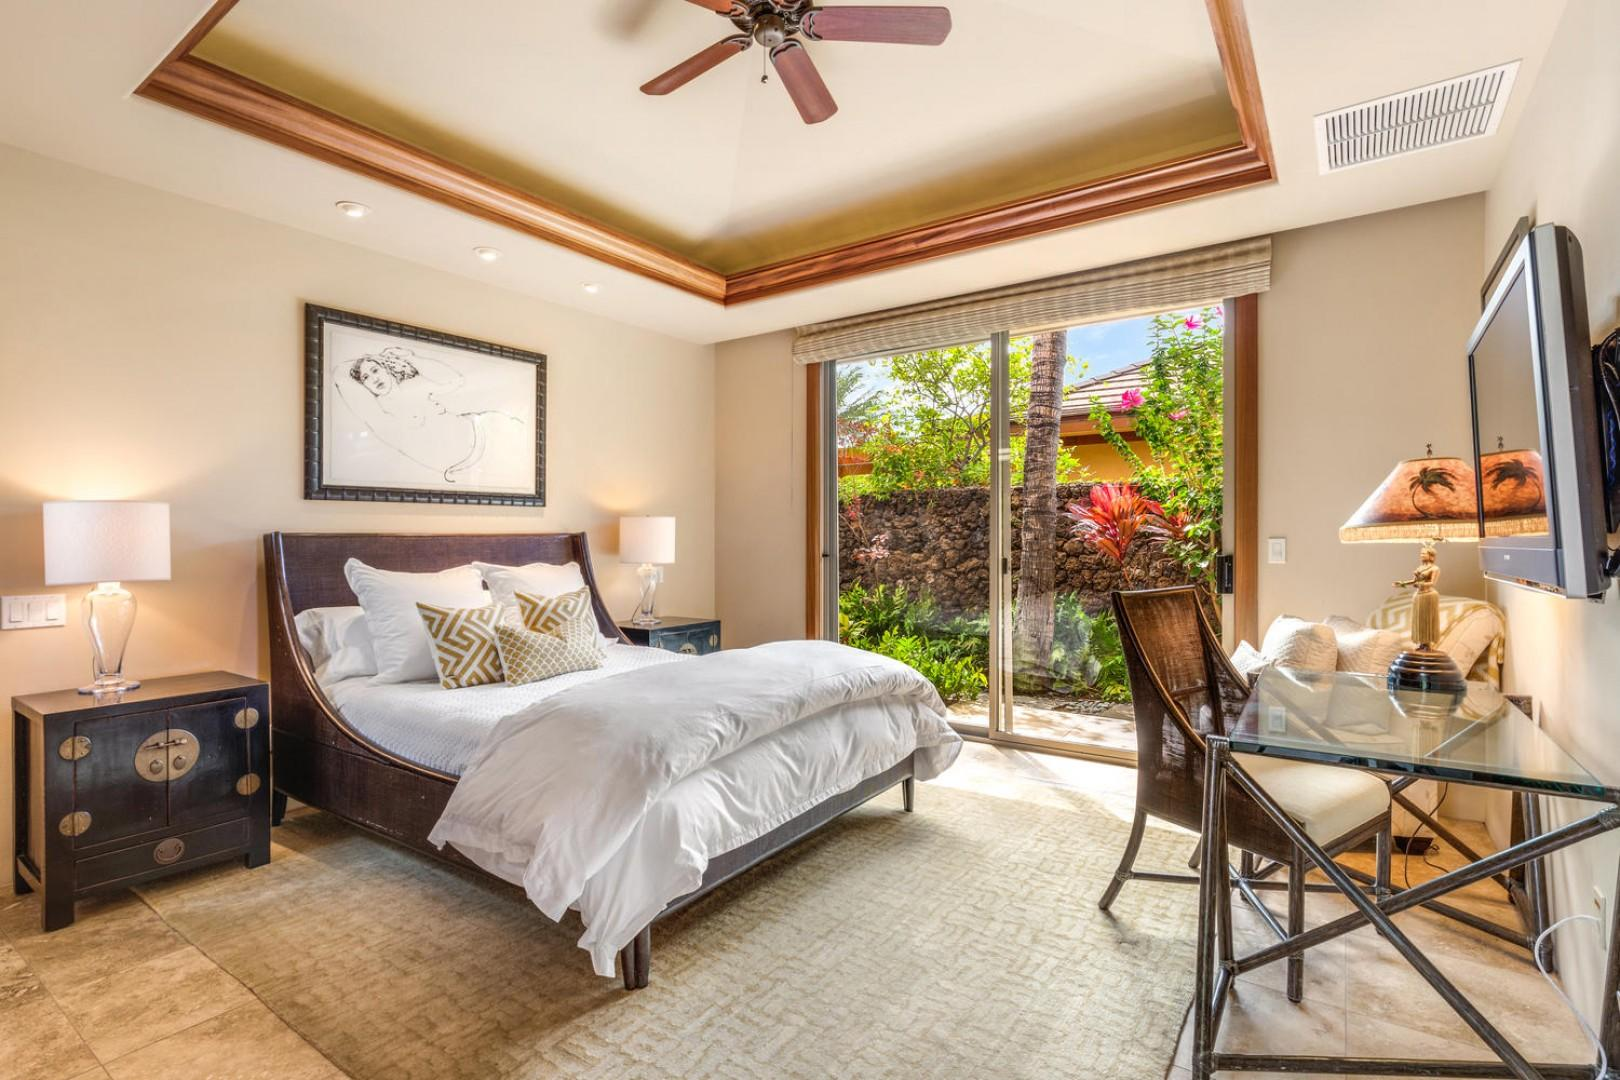 First guest suite with queen bed, wall-mounted flat screen television, sliding doors to outdoor living and en-suite bath.